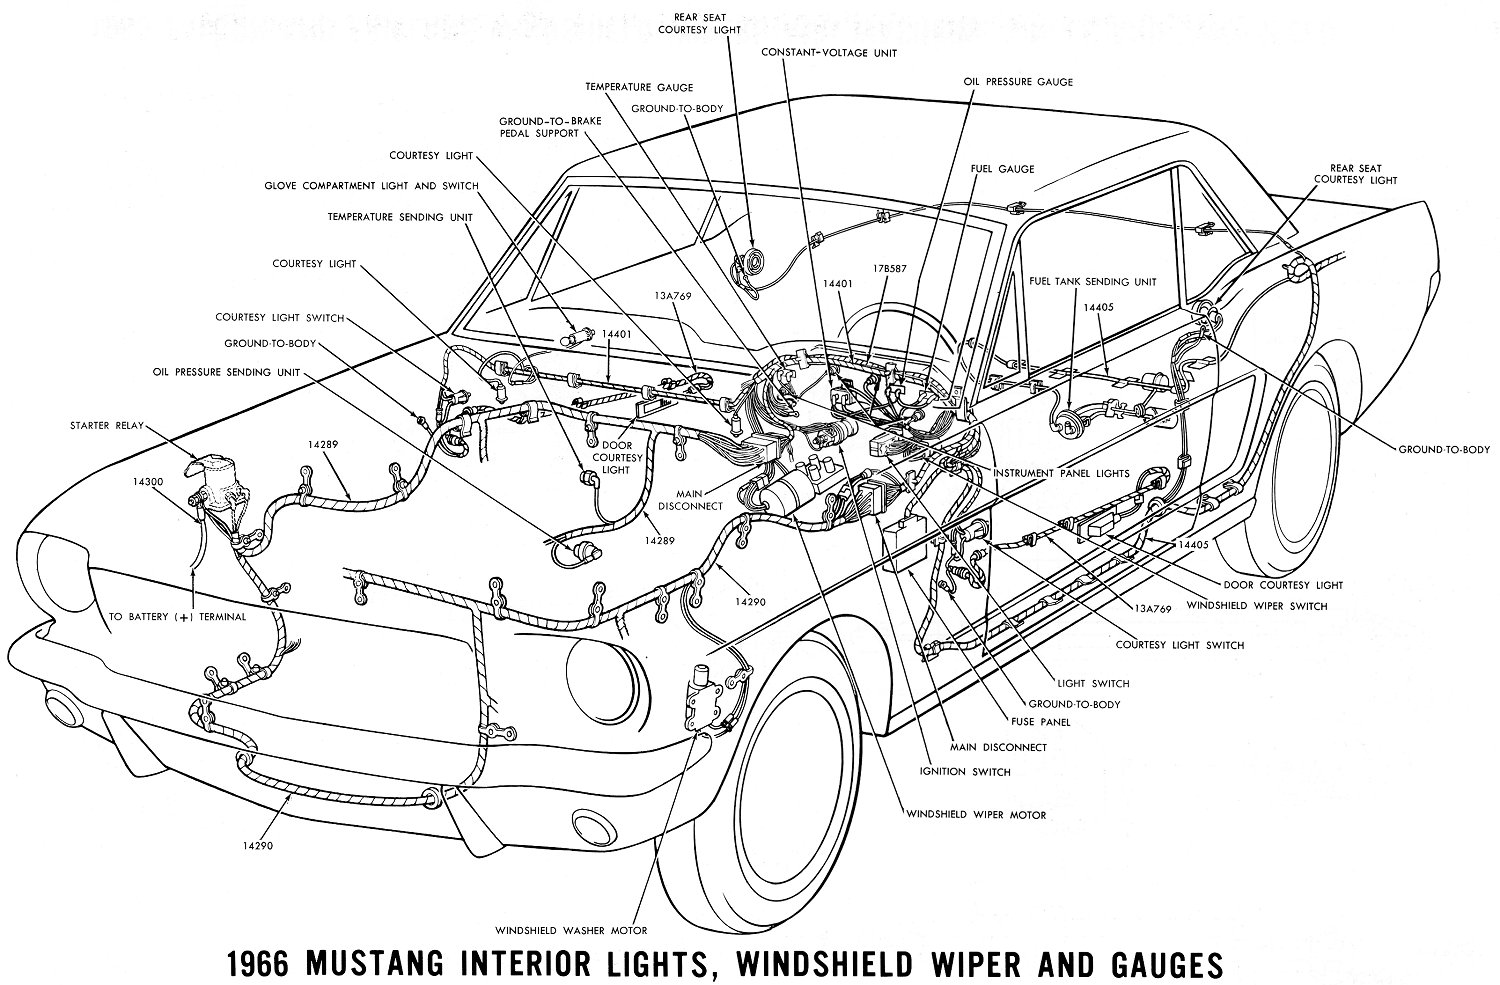 66inter 1966 mustang wiring diagrams average joe restoration 66 mustang engine wiring diagram free at soozxer.org